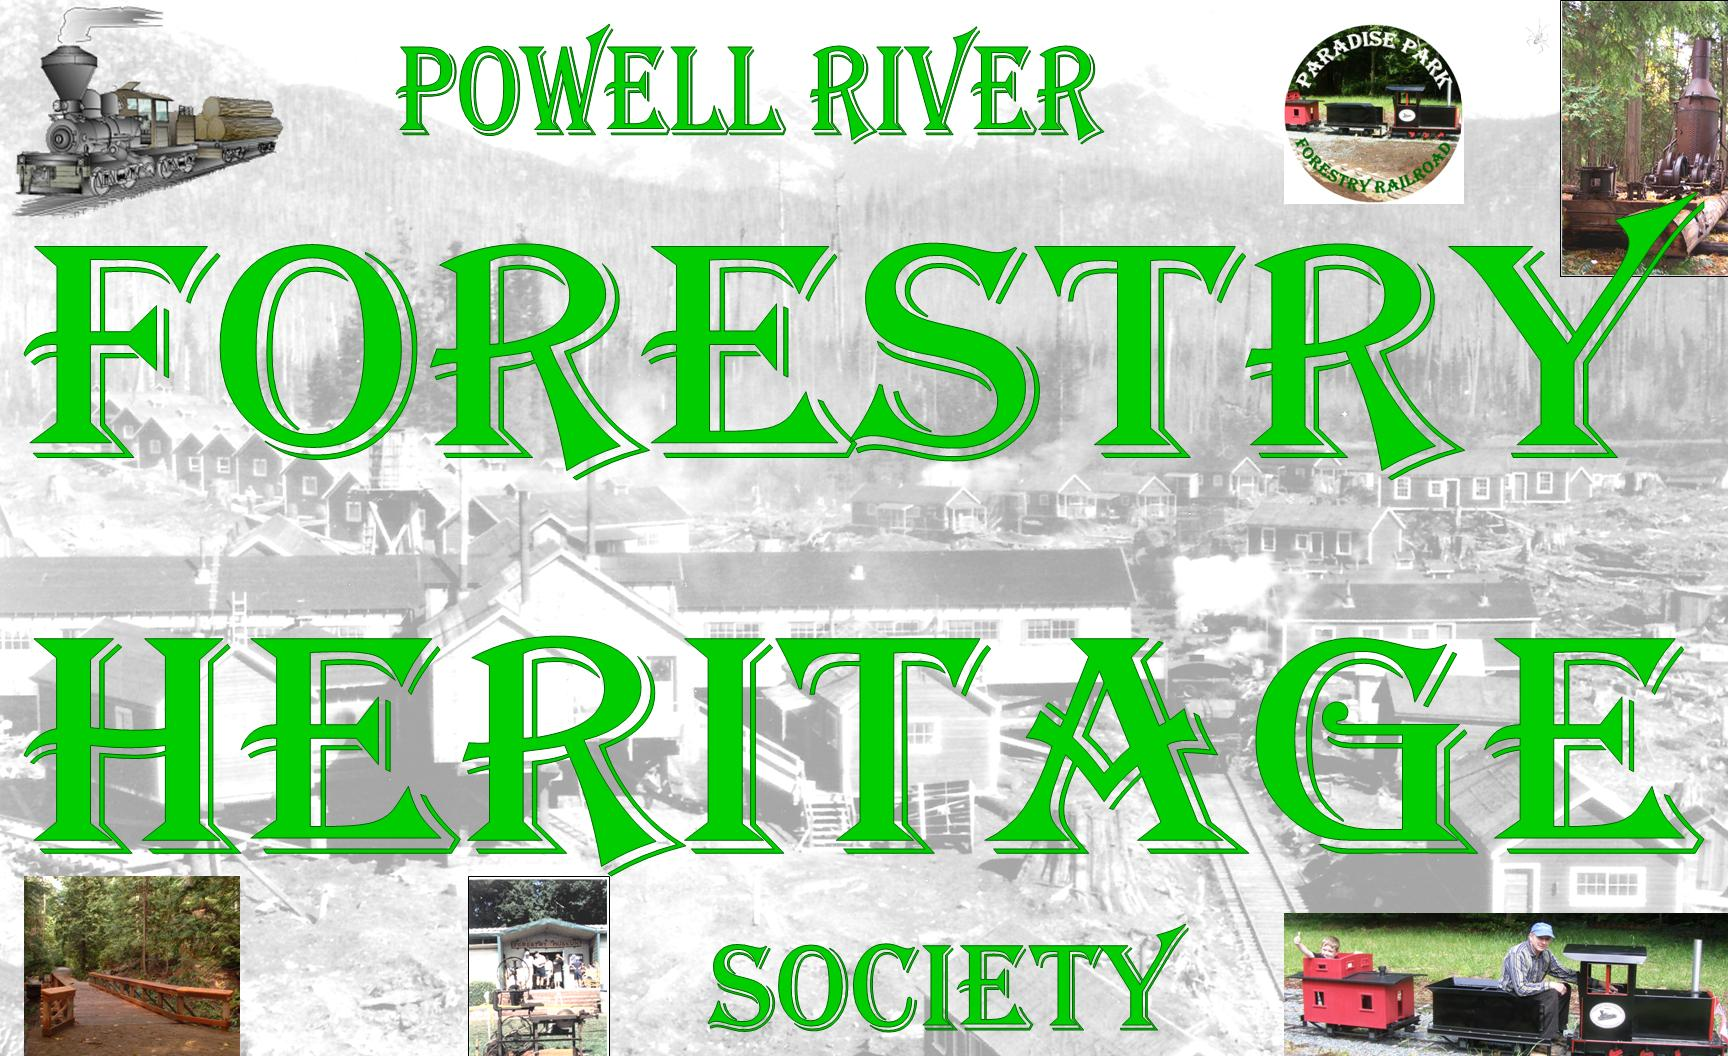 PRForestryHeritageSocietySign-11x18-ears-98dpi